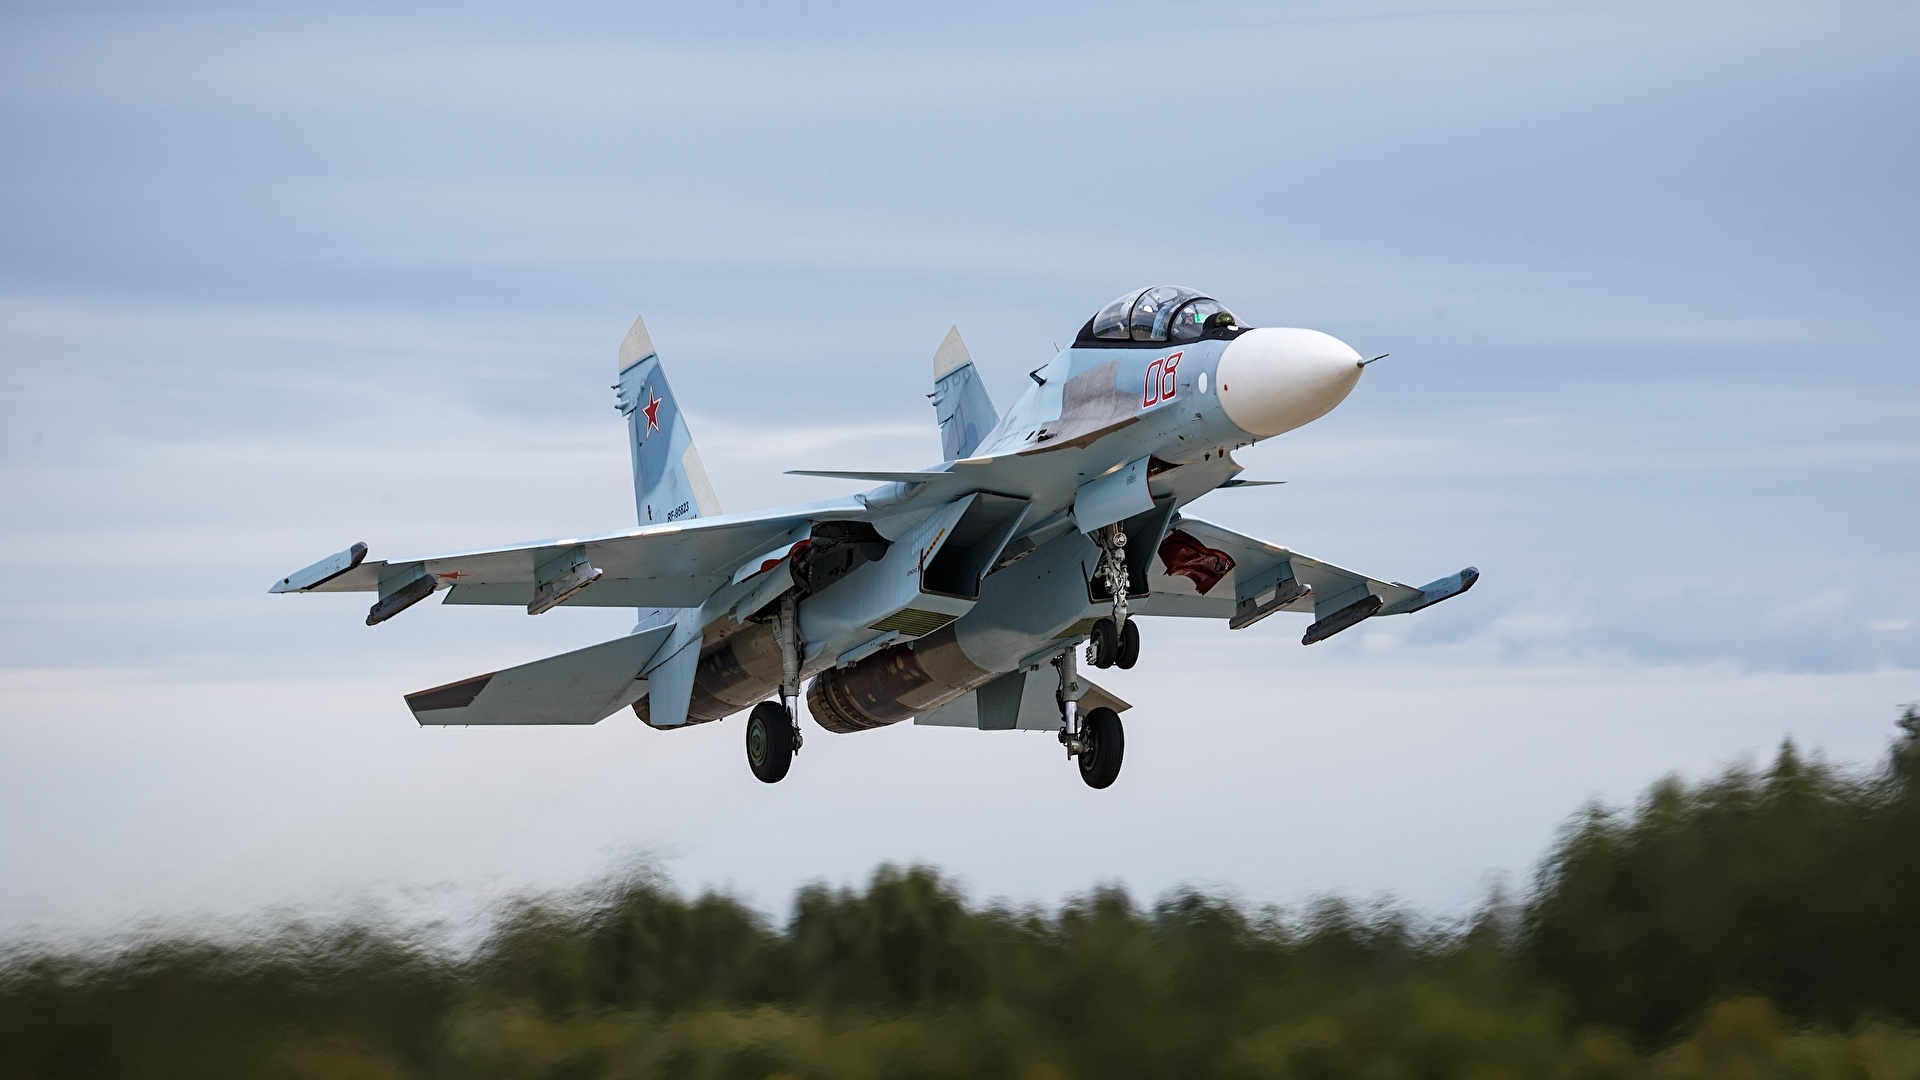 Pictures Sukhoi Su-30 Fighter Airplane Airplane take off 1920x1080